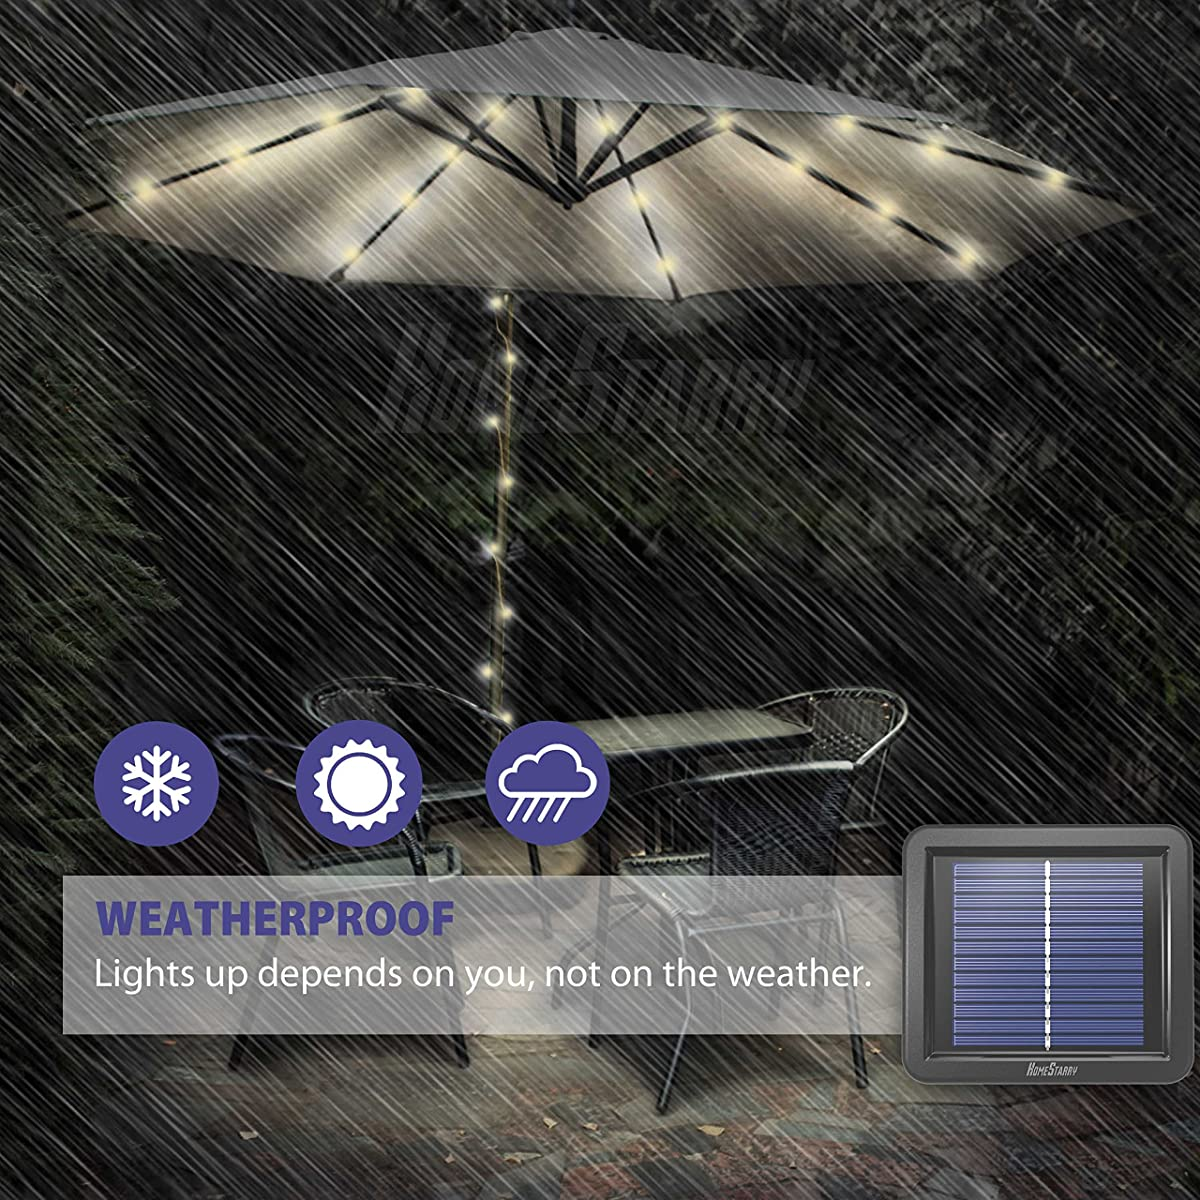 Homestarry Solar Powered String Lights, 300 LEDs 100 Ft with 8 Modes Remote, Tangle-Free Decorative Rope Lights, IP65 Waterproof Solar Lights for Outdoors, Garden, Patio, Parties,Christmas(Warm White)